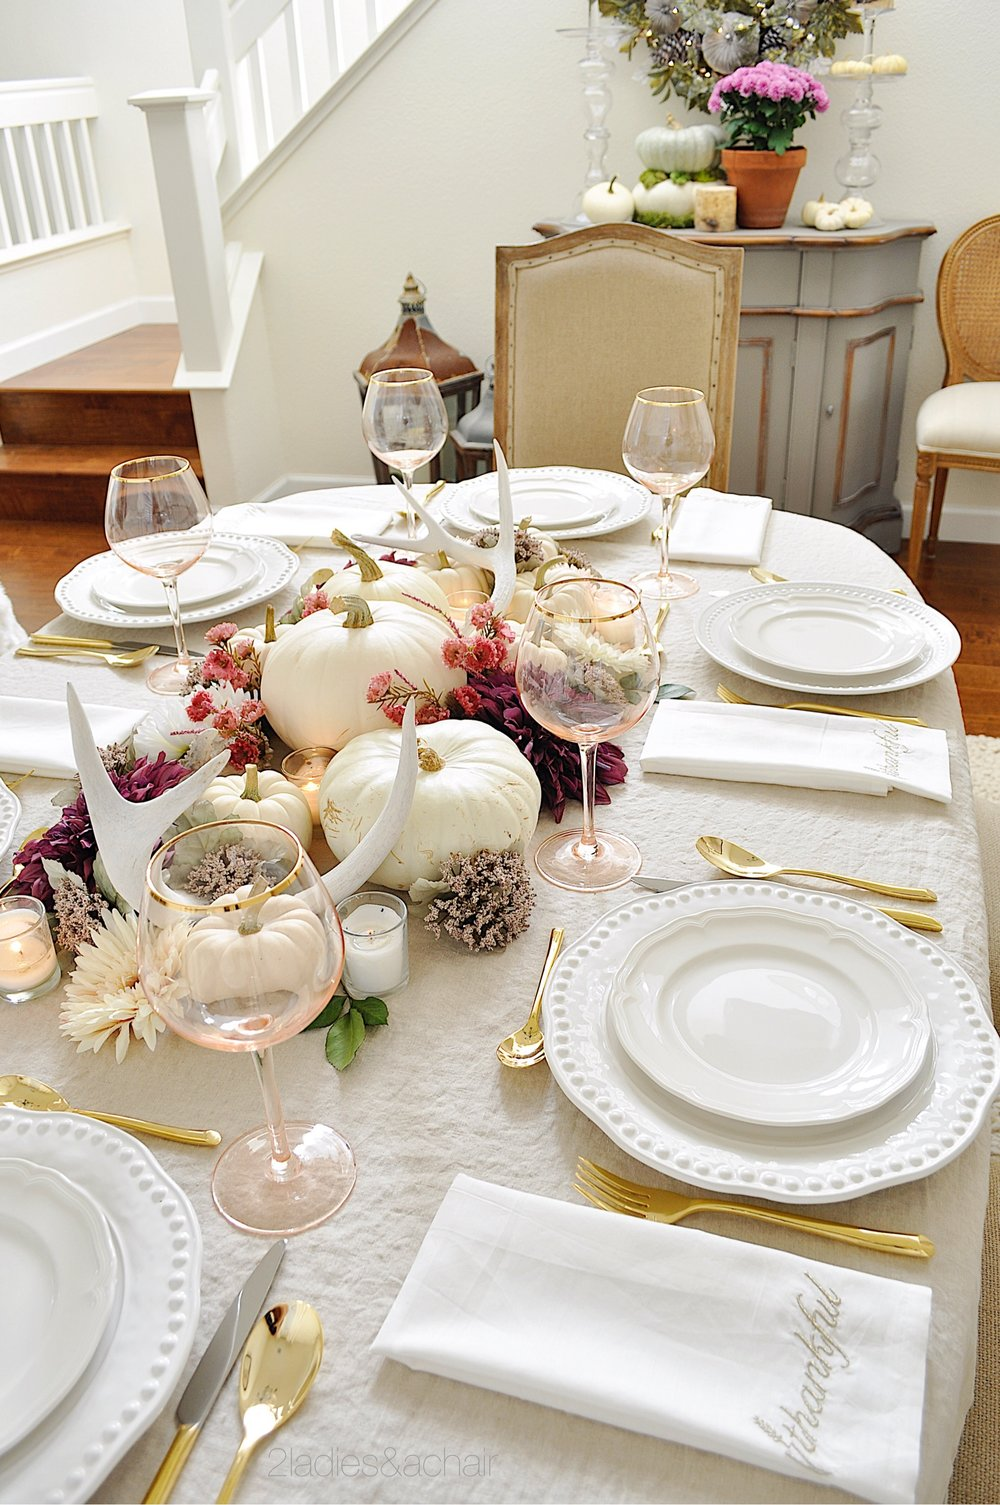 thanksgiving table IMG_8428.JPG